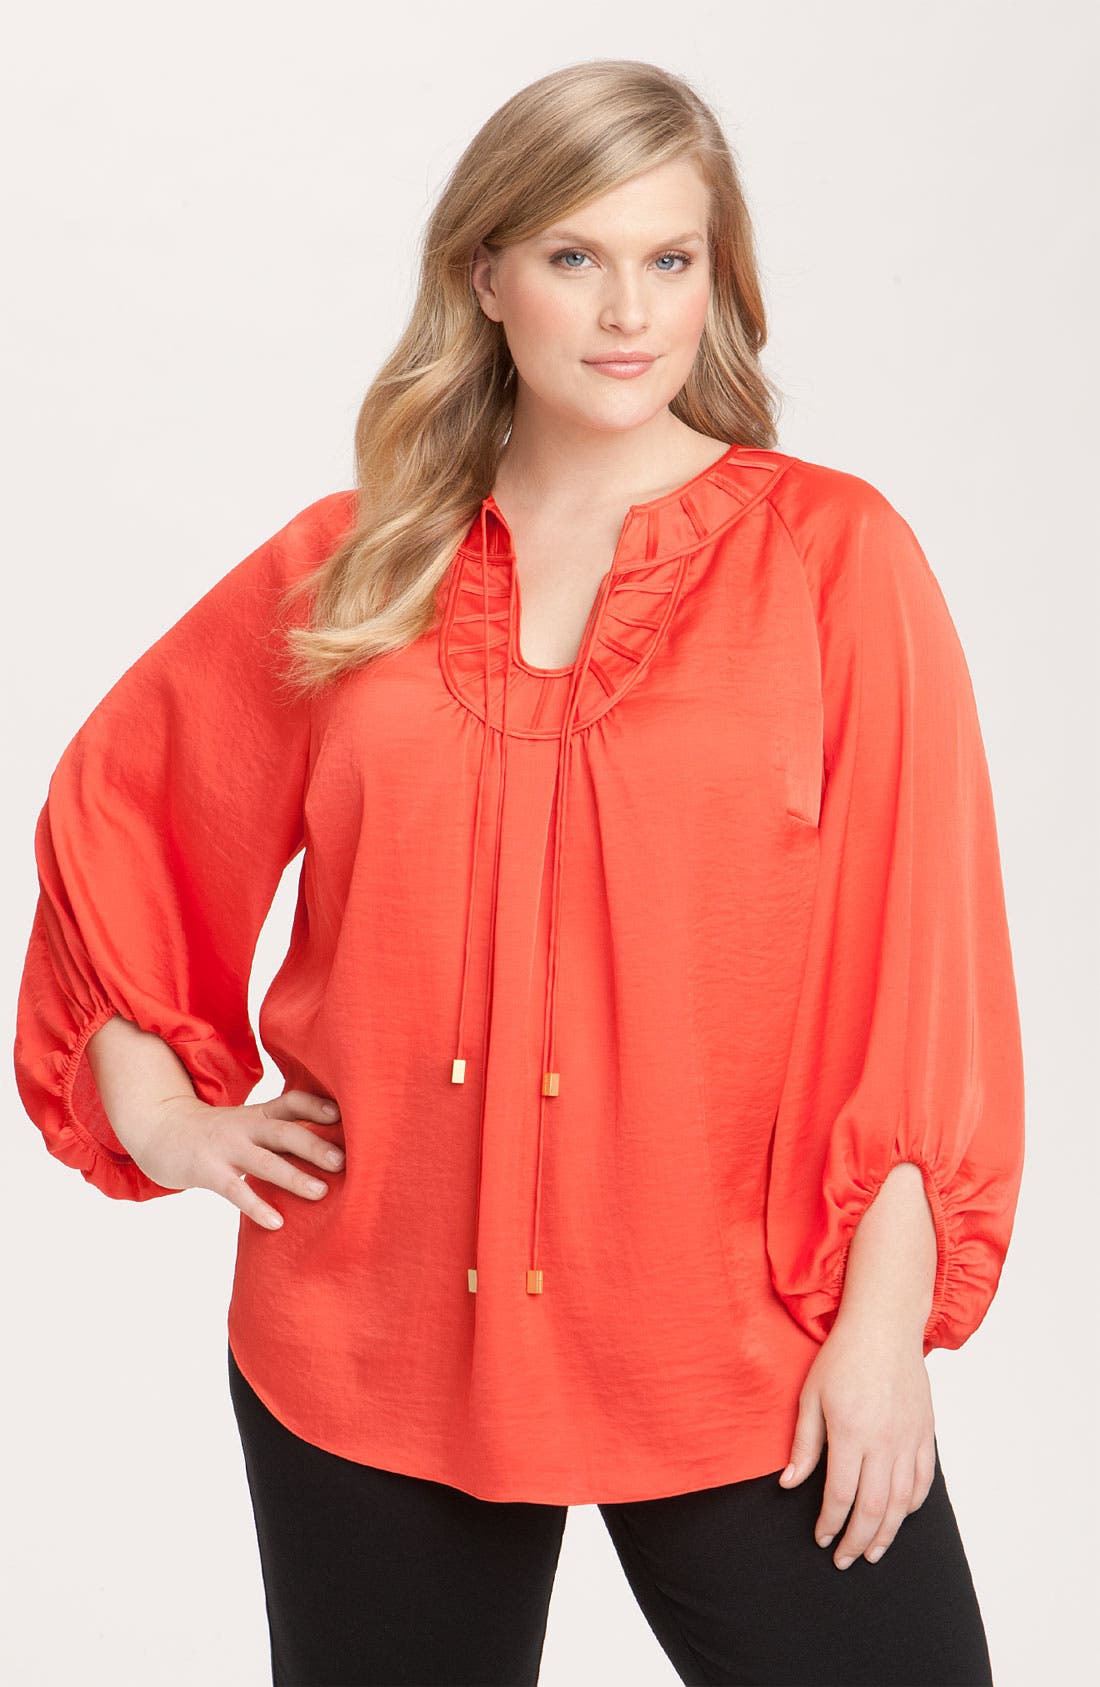 Alternate Image 1 Selected - Vince Camuto Tie Neck Peasant Blouse (Plus)